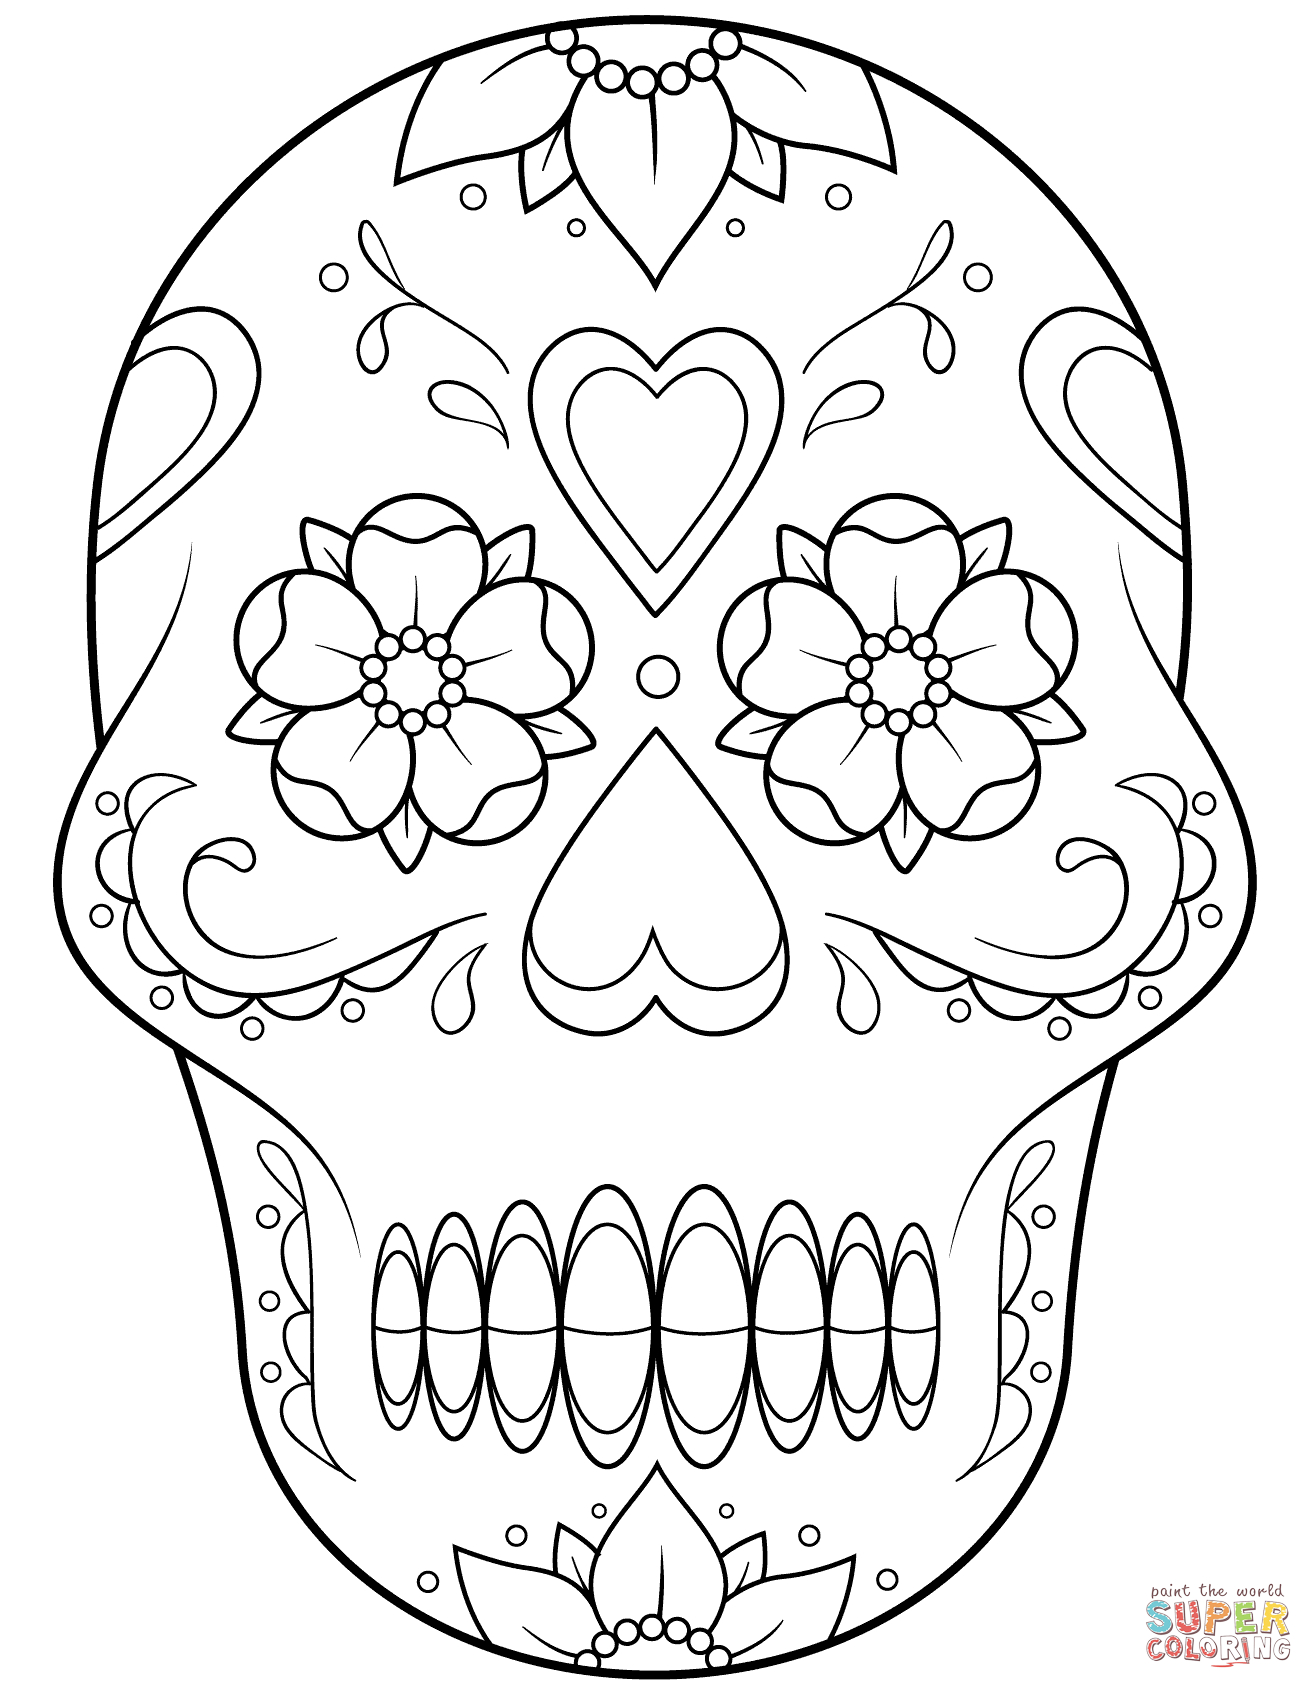 Sugar Skull With Flowers And Hearts Coloring Page   Free Printable - Free Printable Sugar Skull Coloring Pages